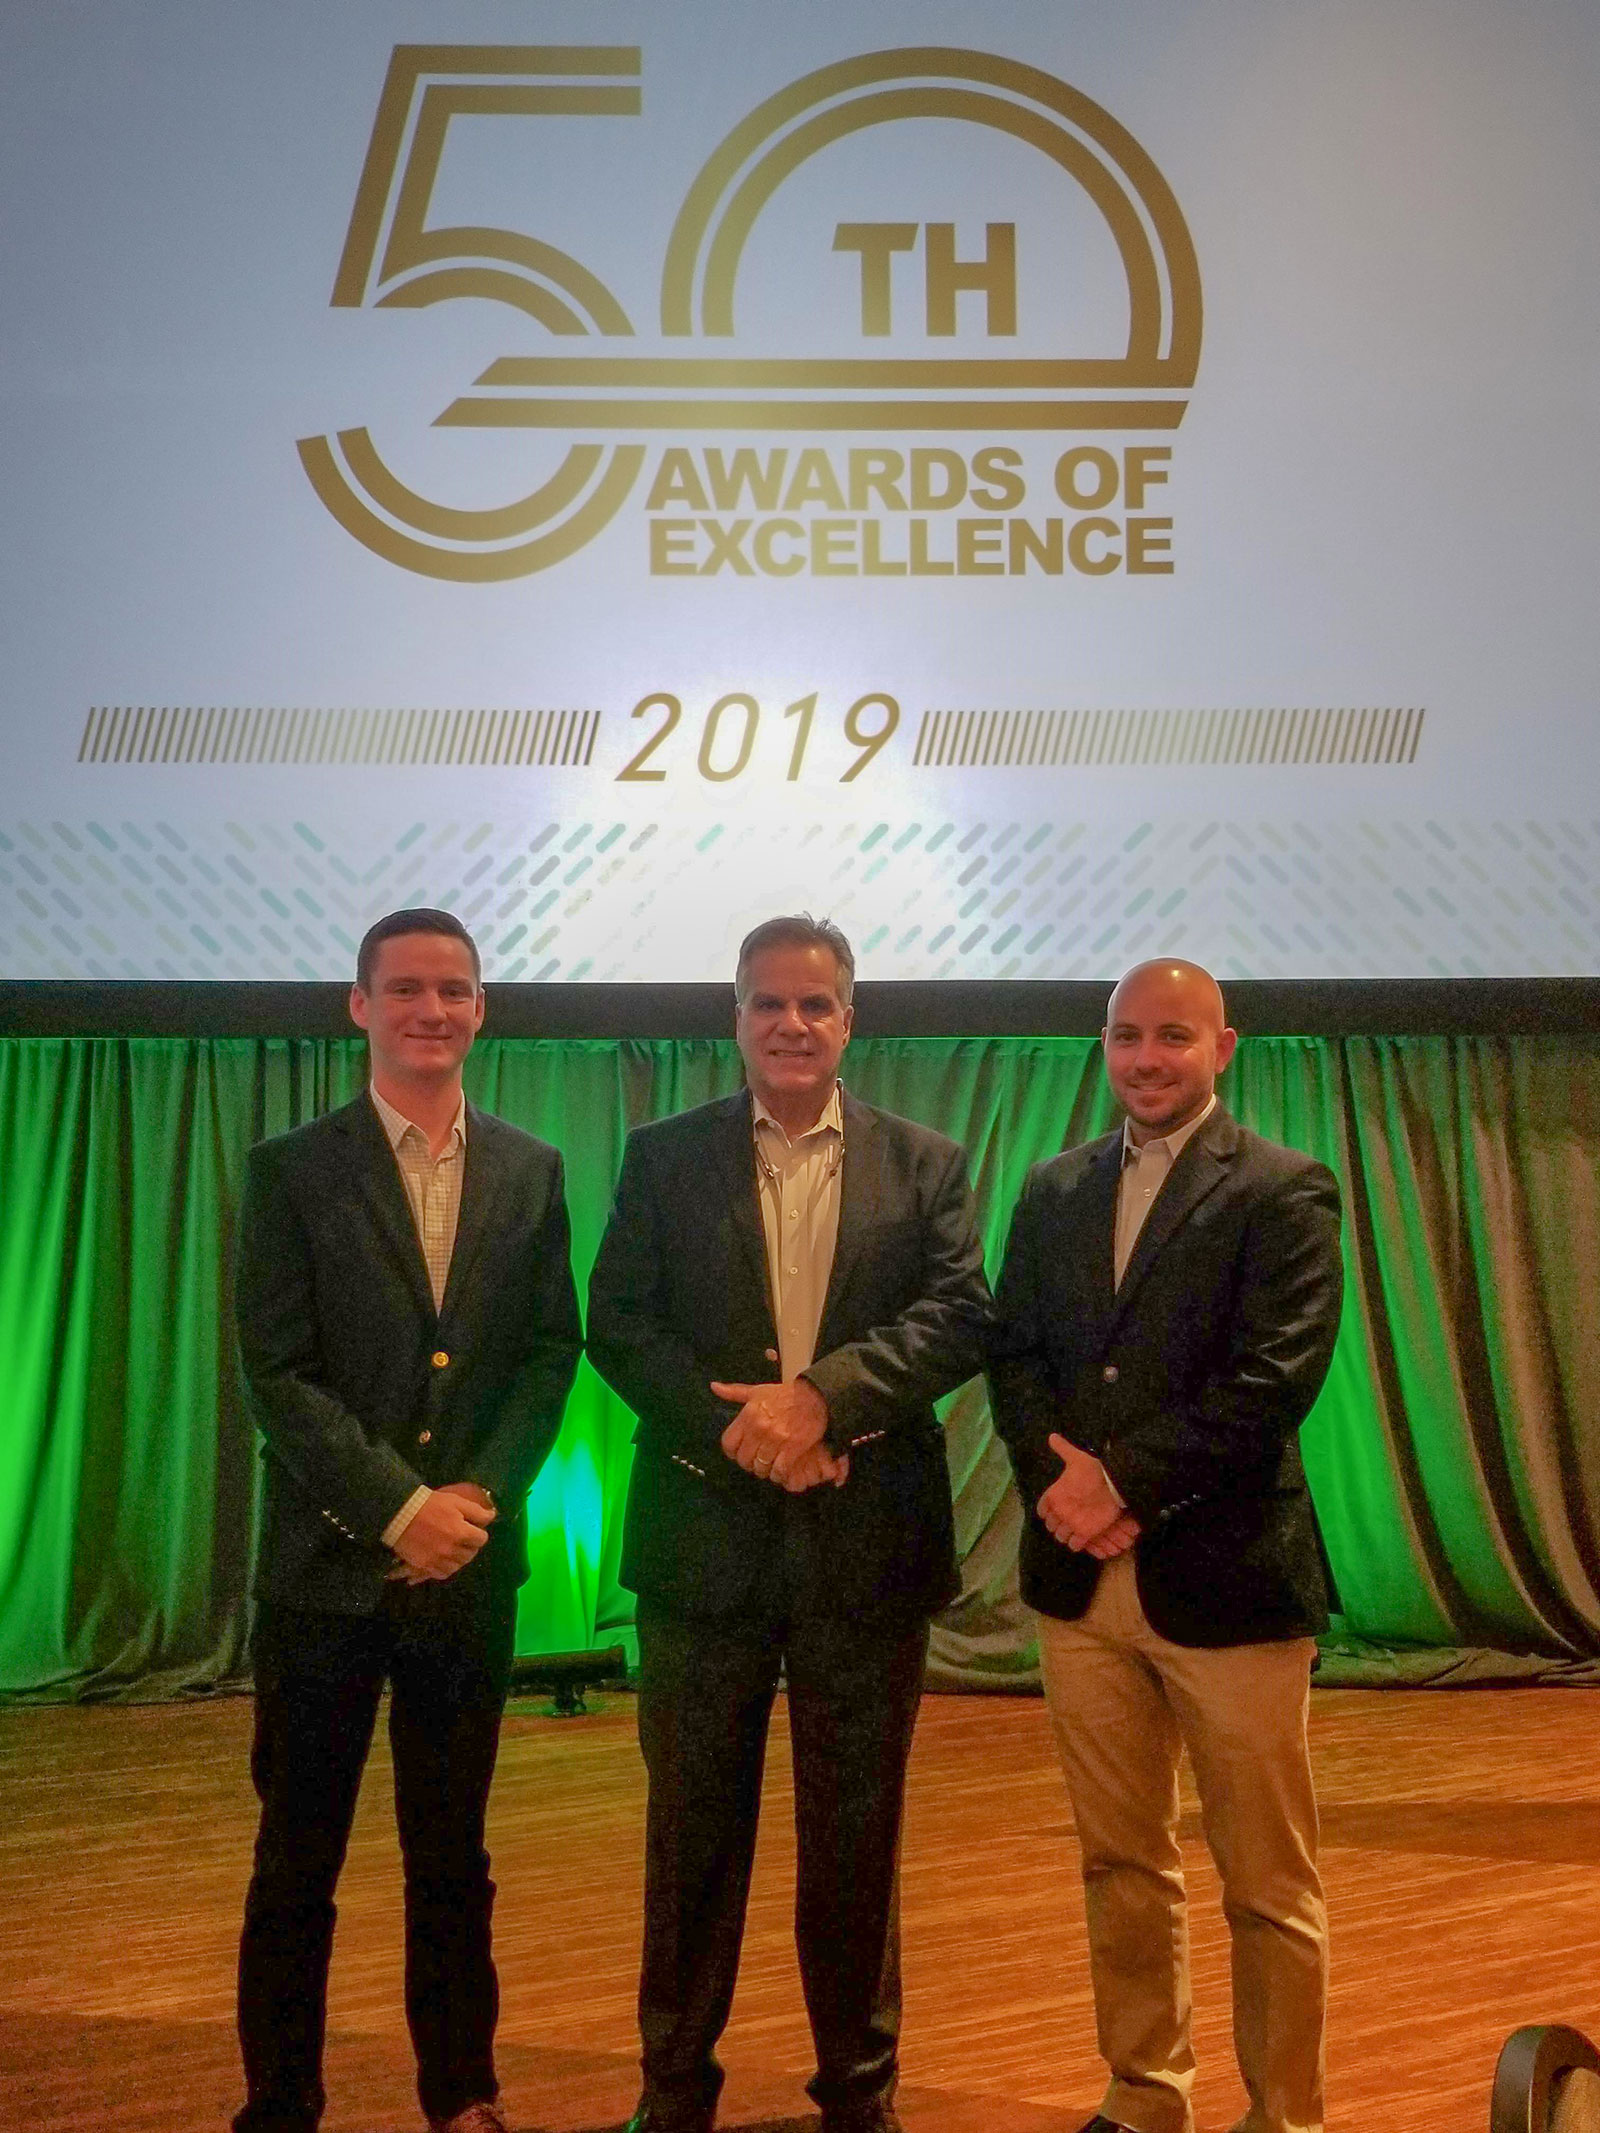 R.P. Marzilli & Co. Wins NALP Gold Awards of Excellence